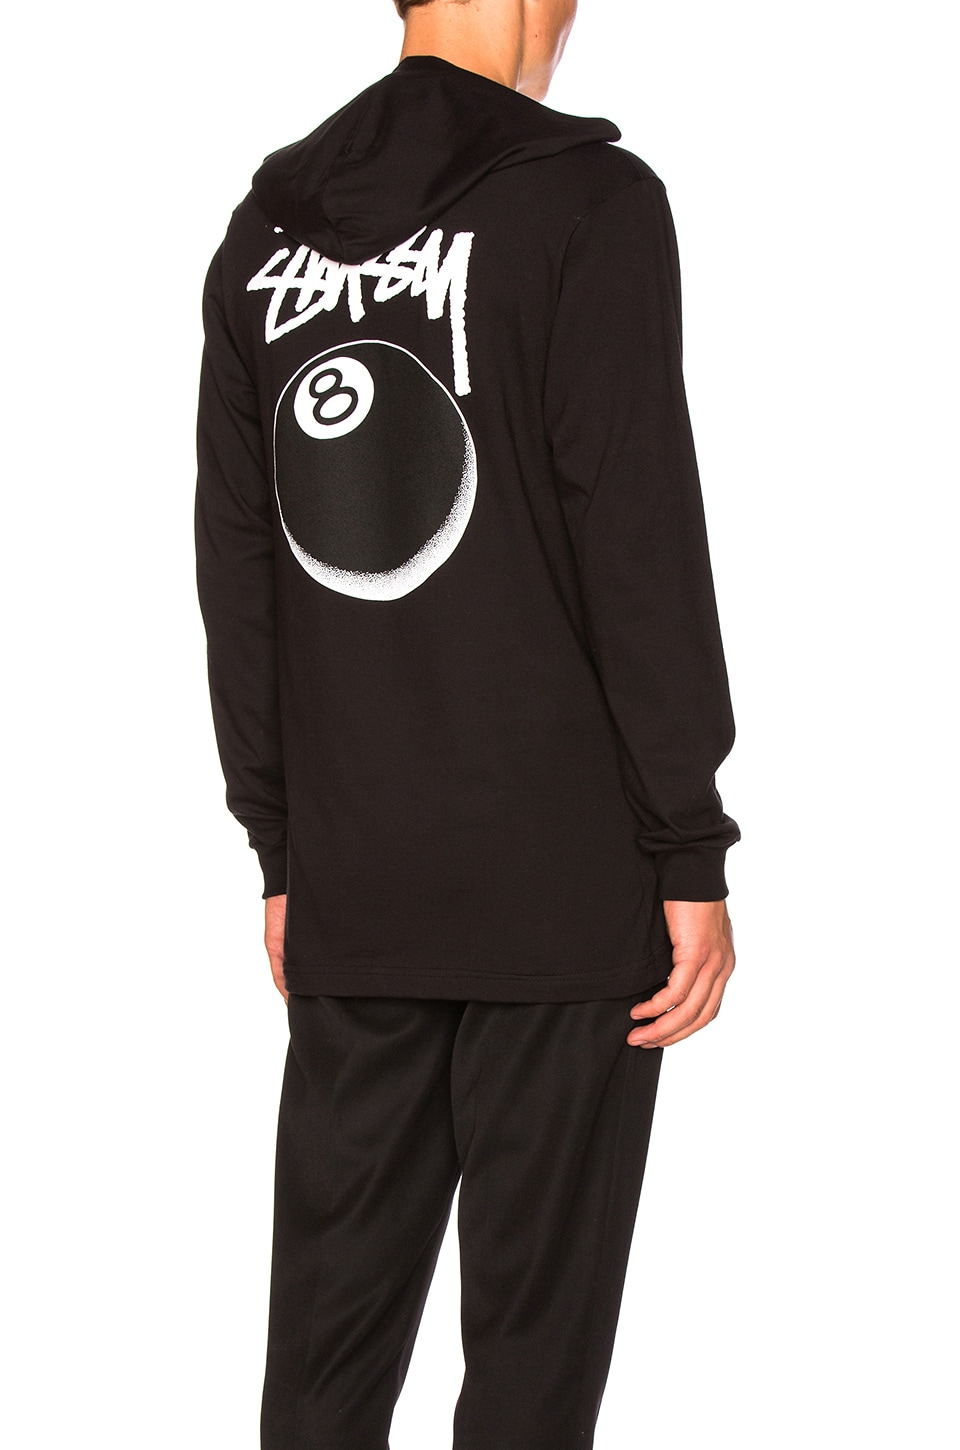 8 Ball Stipple Hooded Tee by Stussy